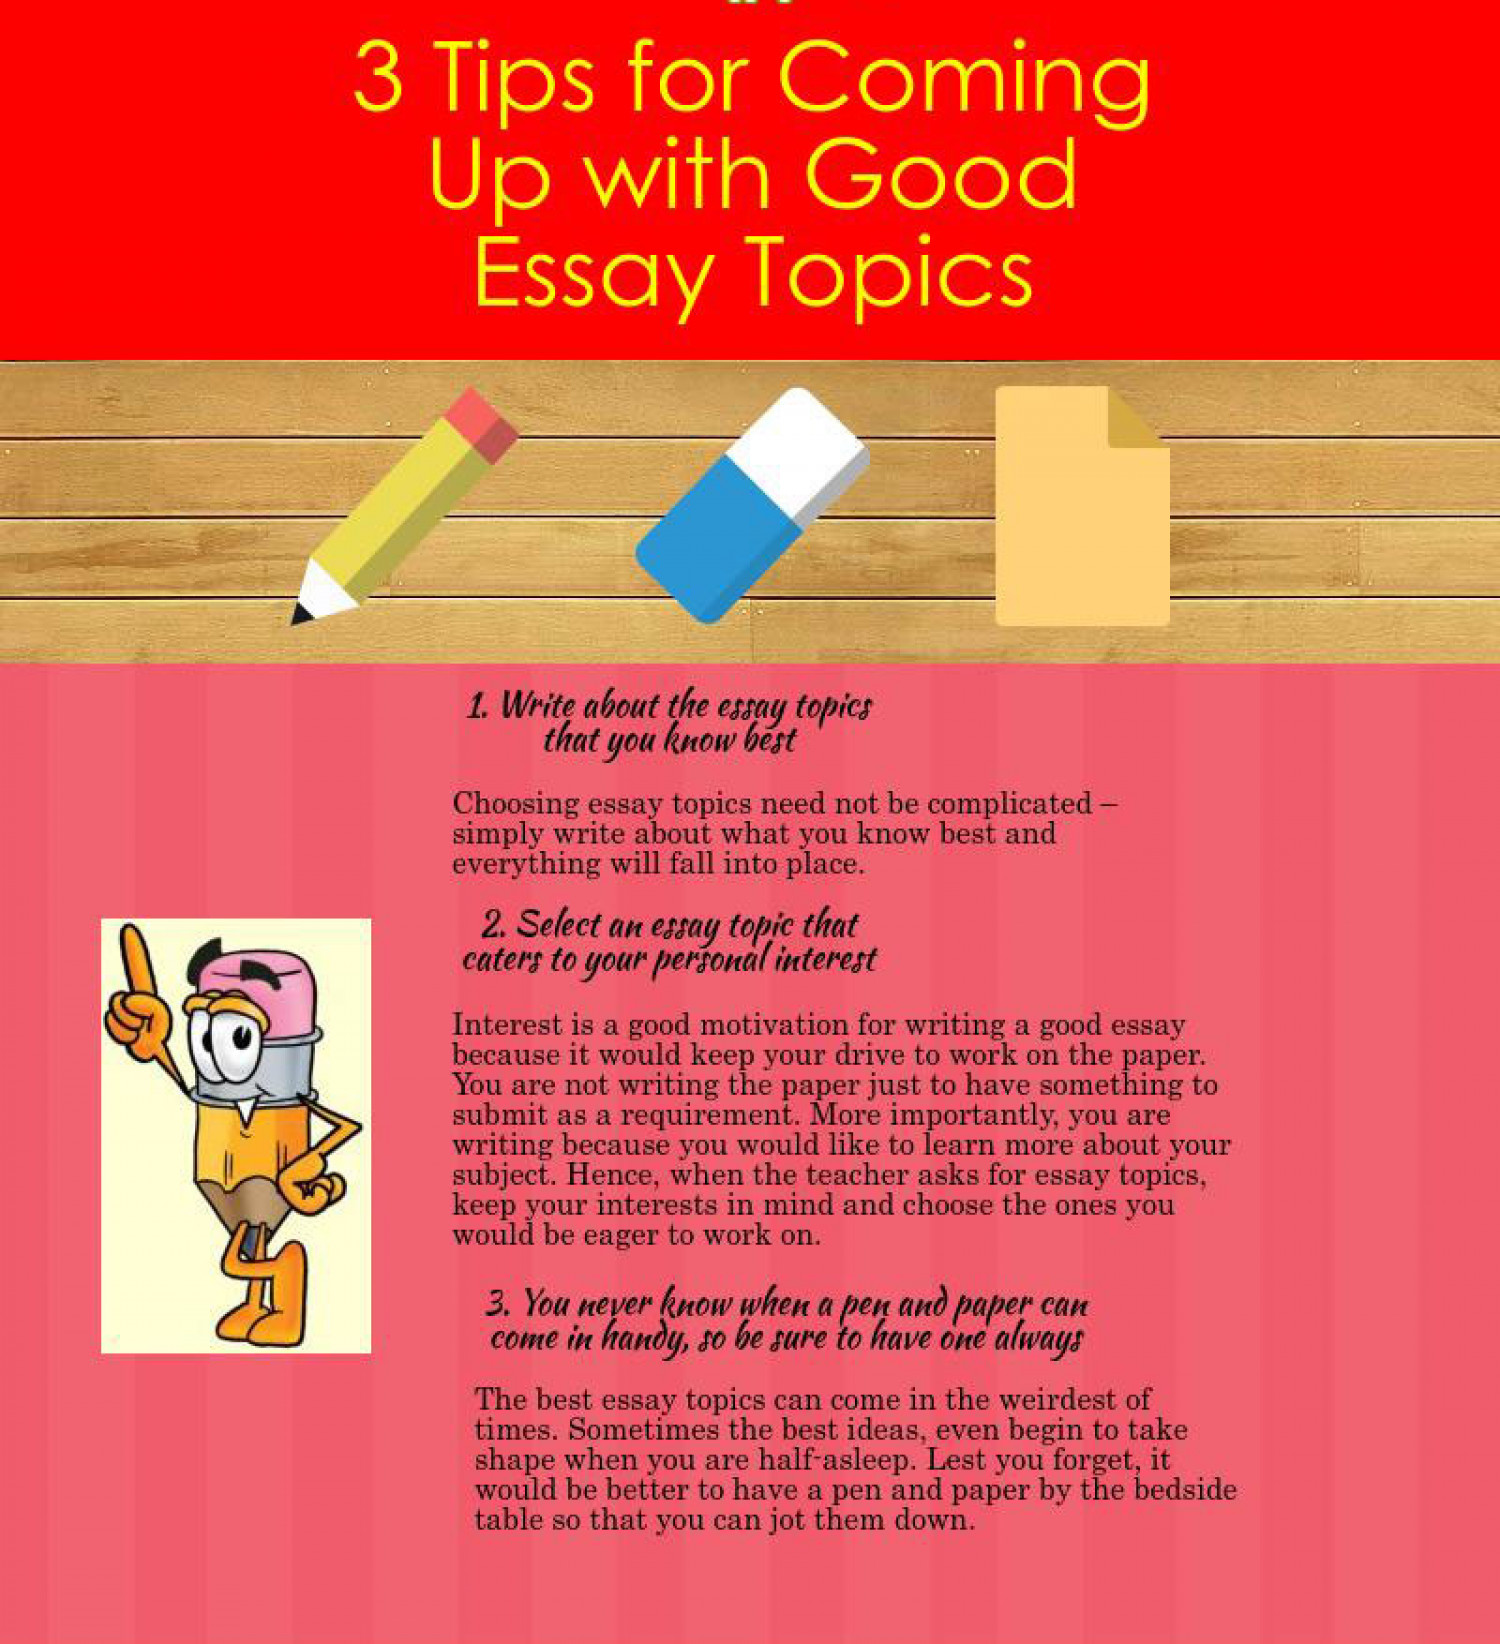 3 tips for coming up good essay topics visual ly 3 tips for coming up good essay topics infographic